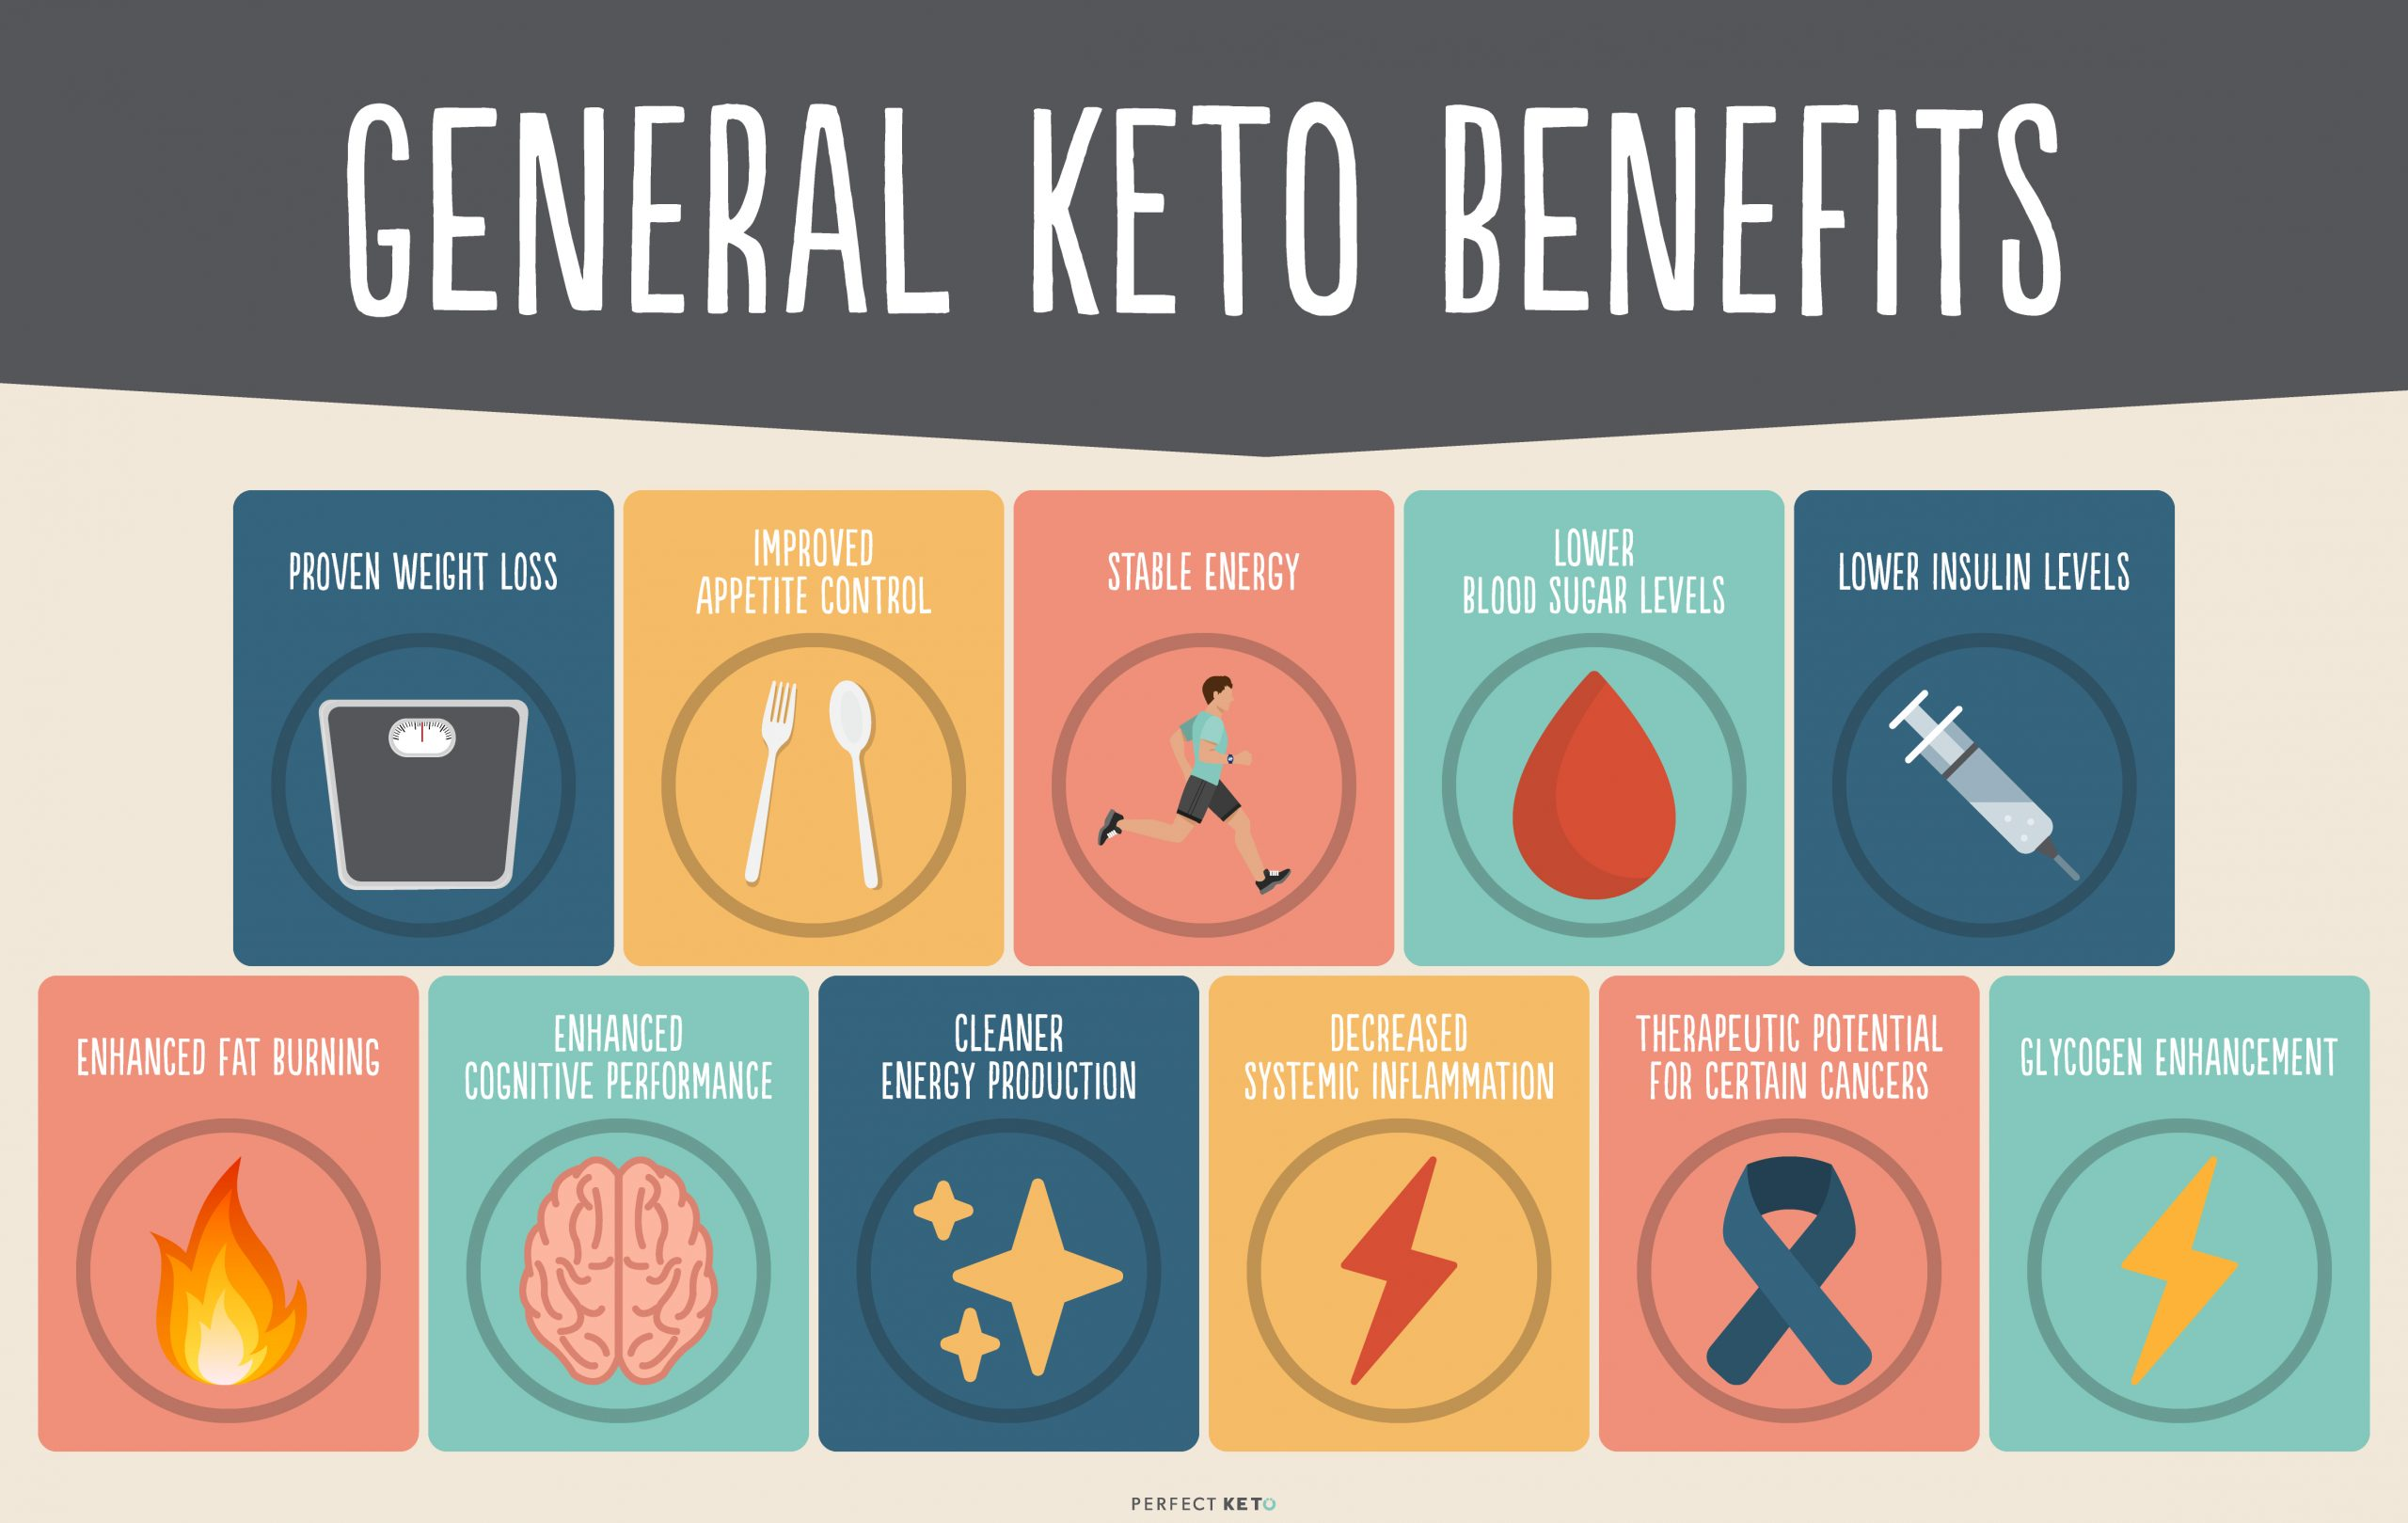 General keto benefits